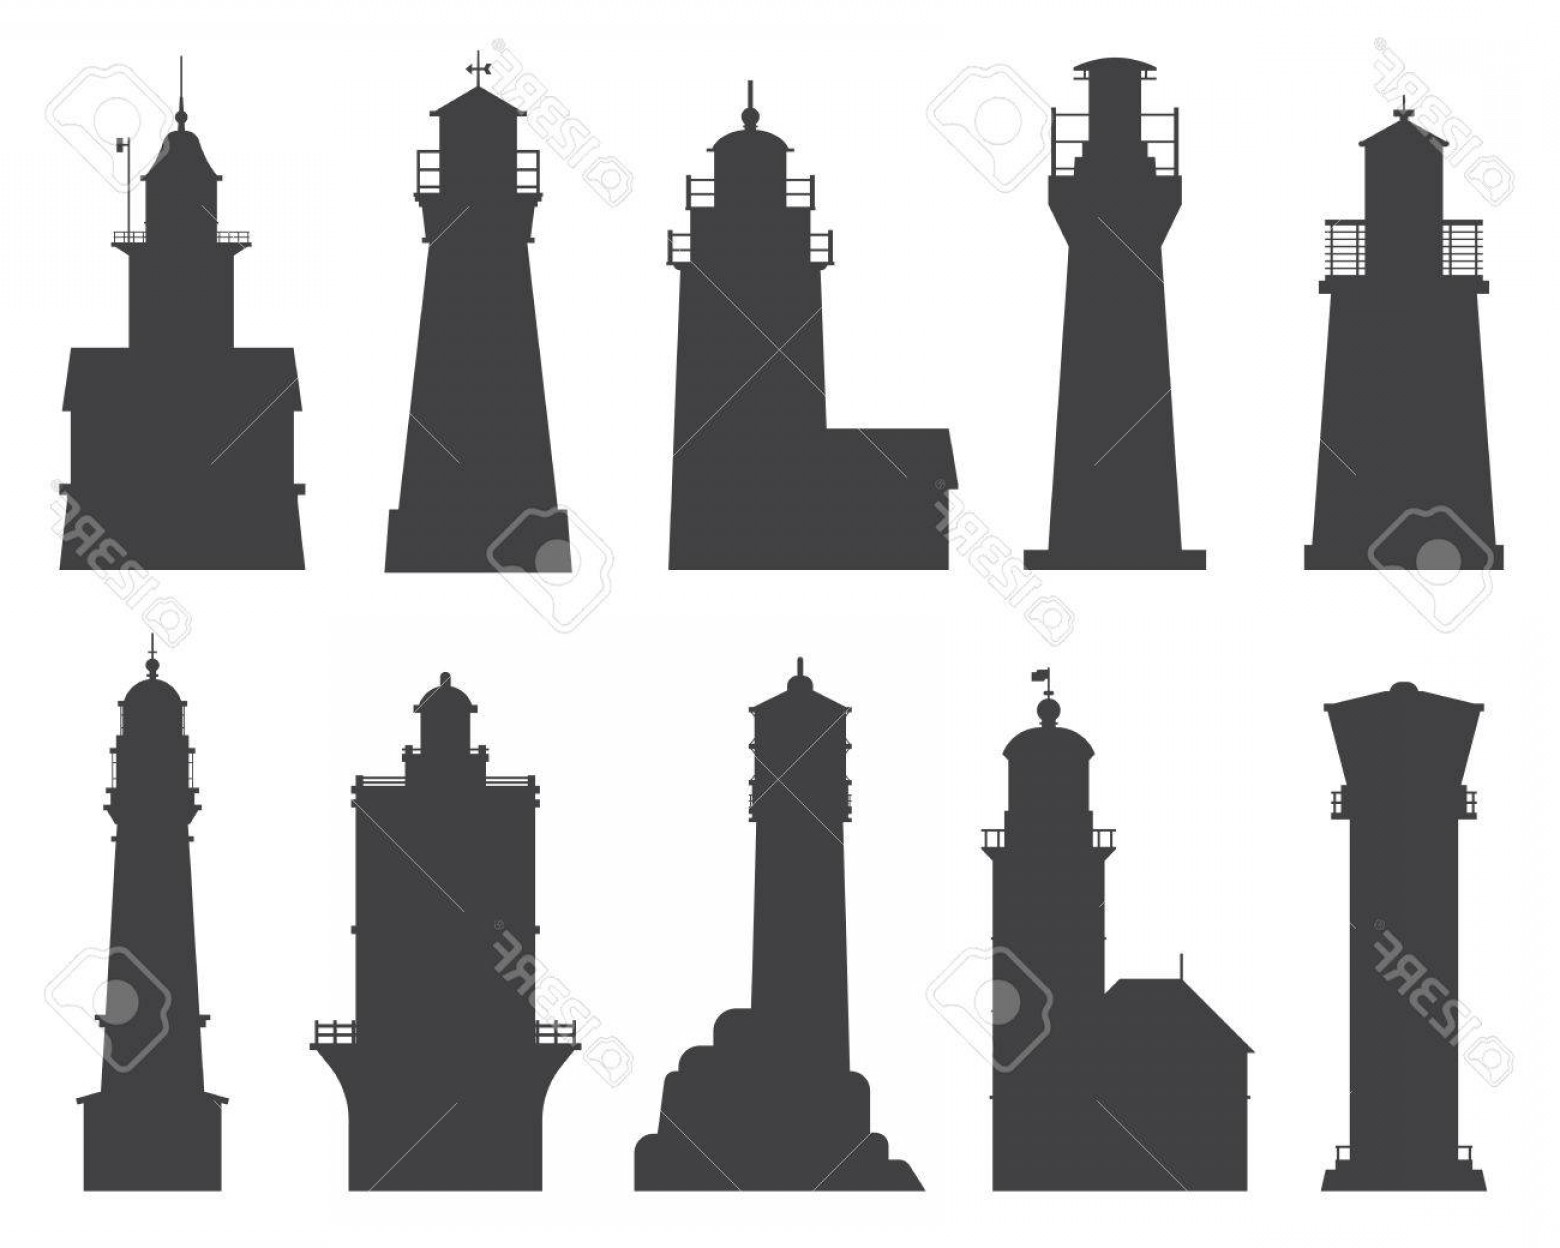 Lighthouse Beacon Silhouette Vector: Photolighthouse Silhouette Set Different Sea Guiding Light Houses Buildings Sea Pharos Or Beacon Collecti